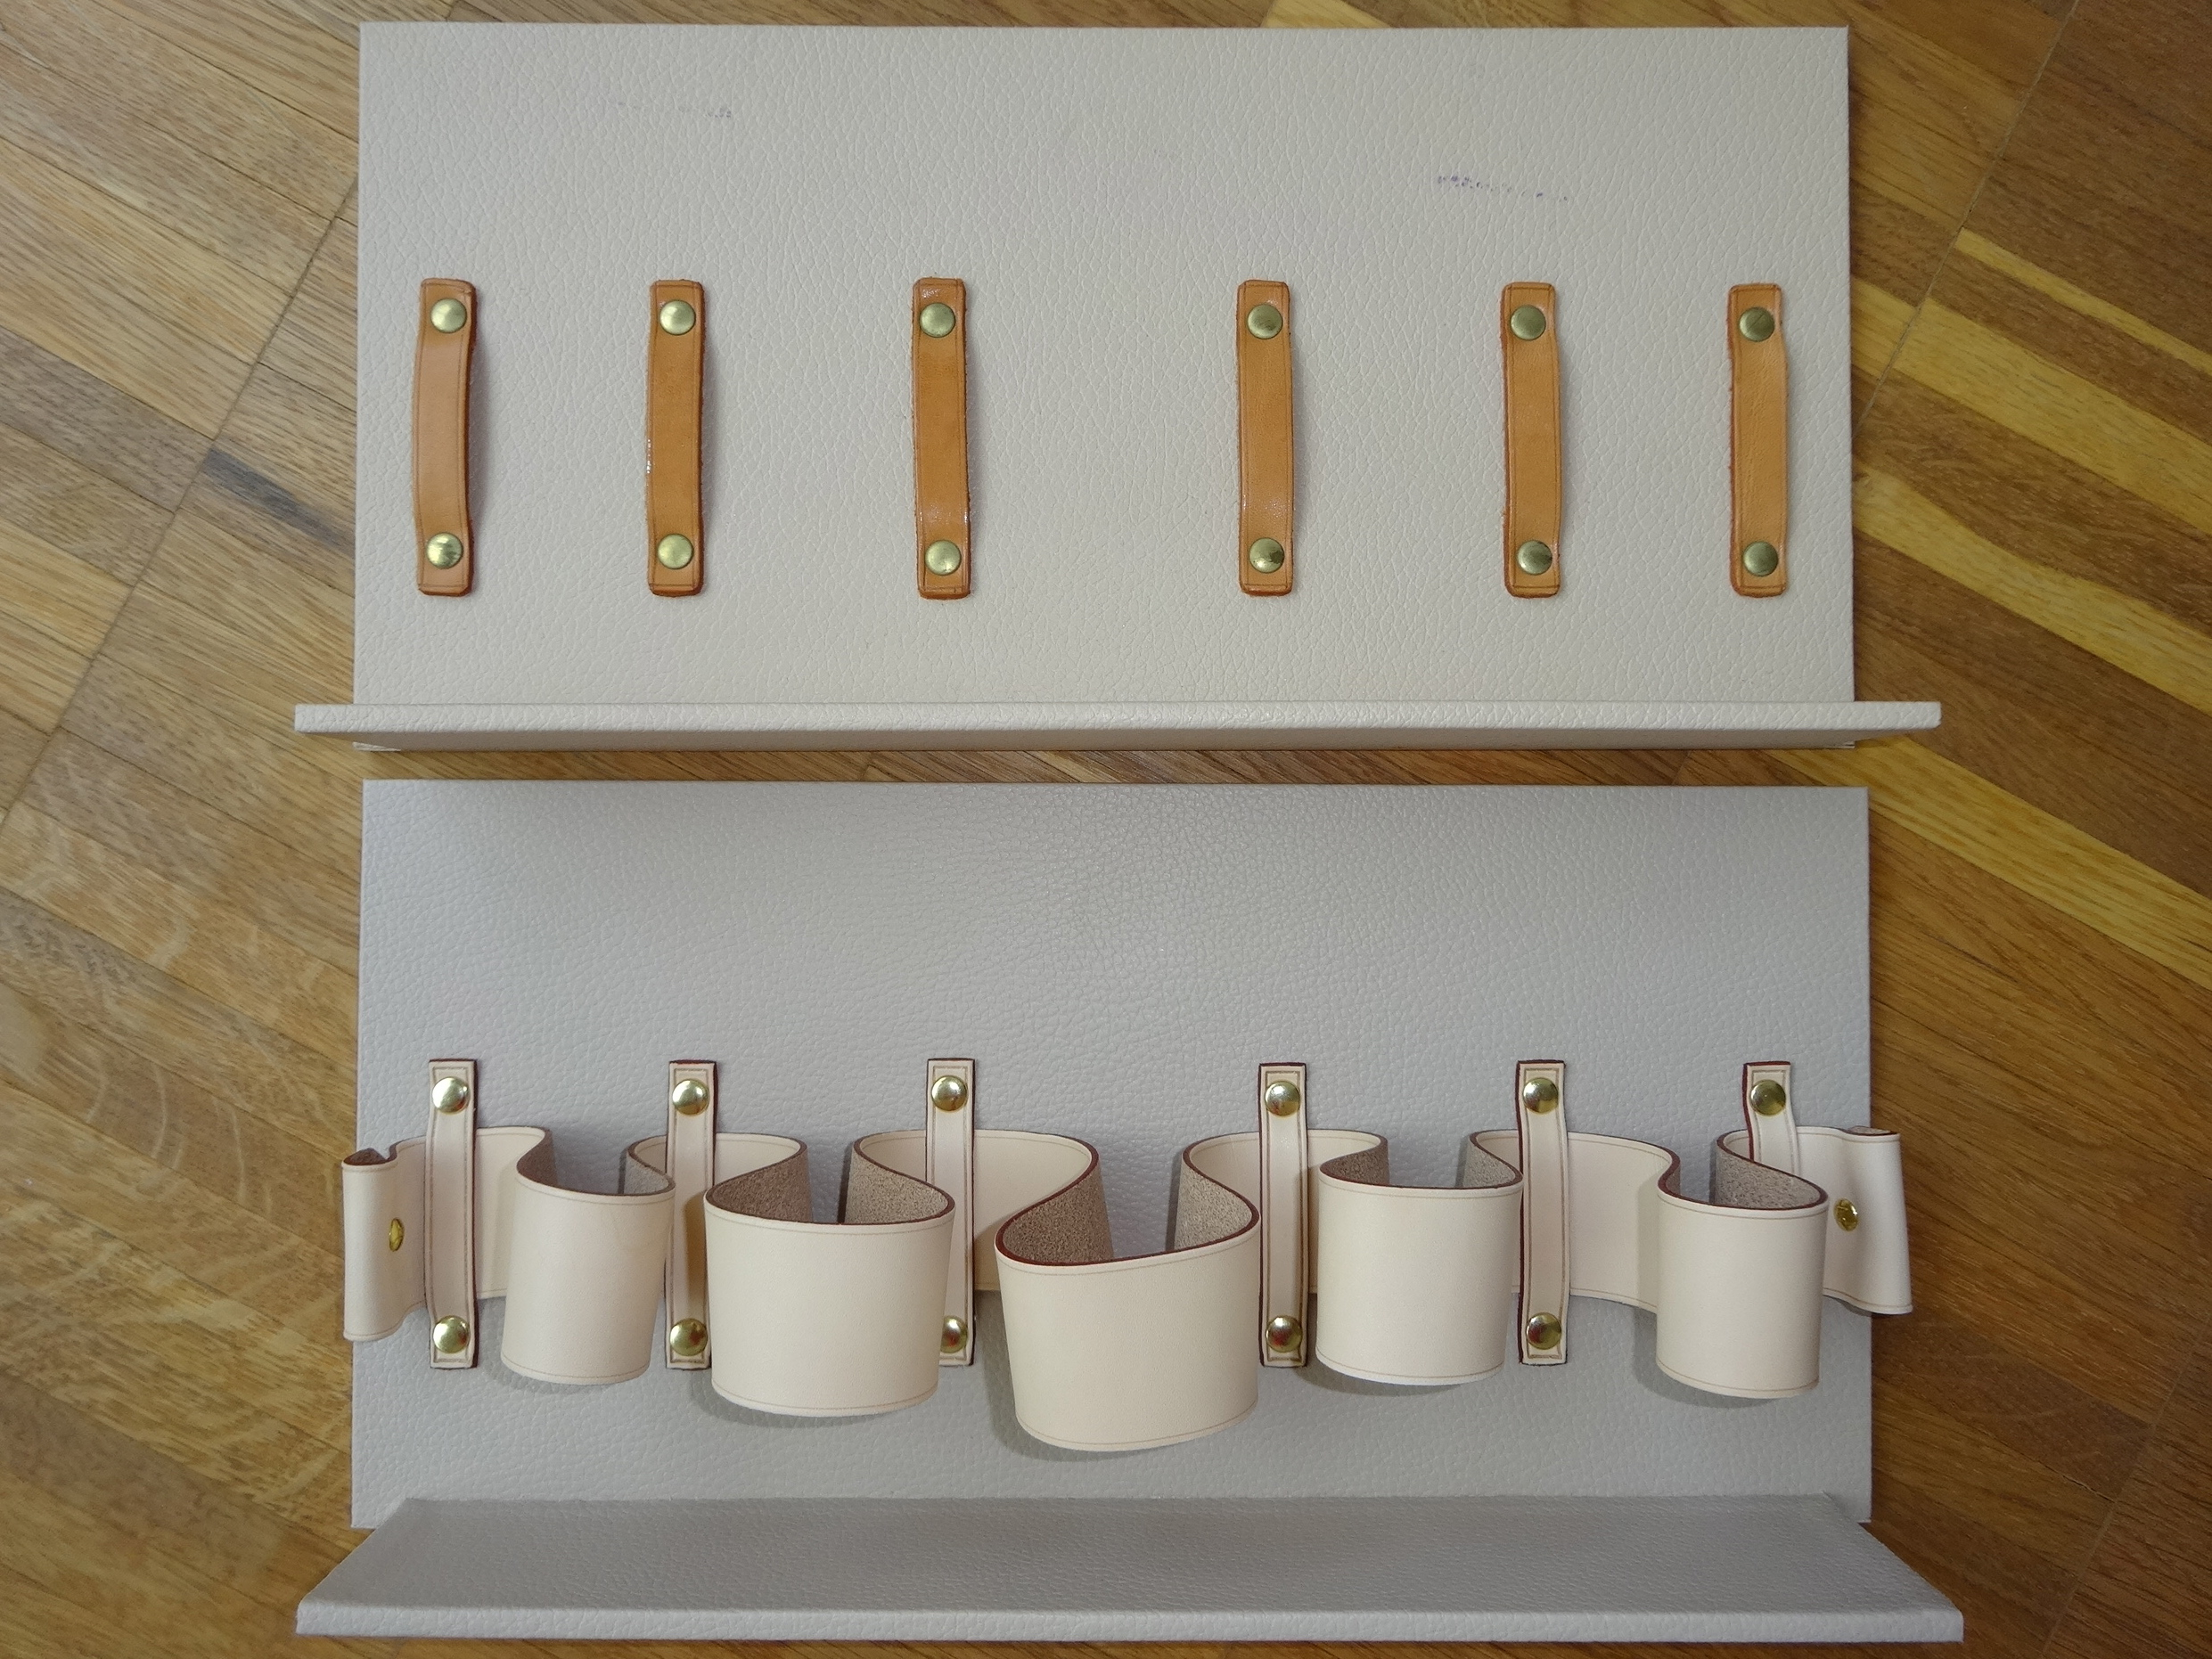 Dividers: top old, without strap, bottom new, with strap